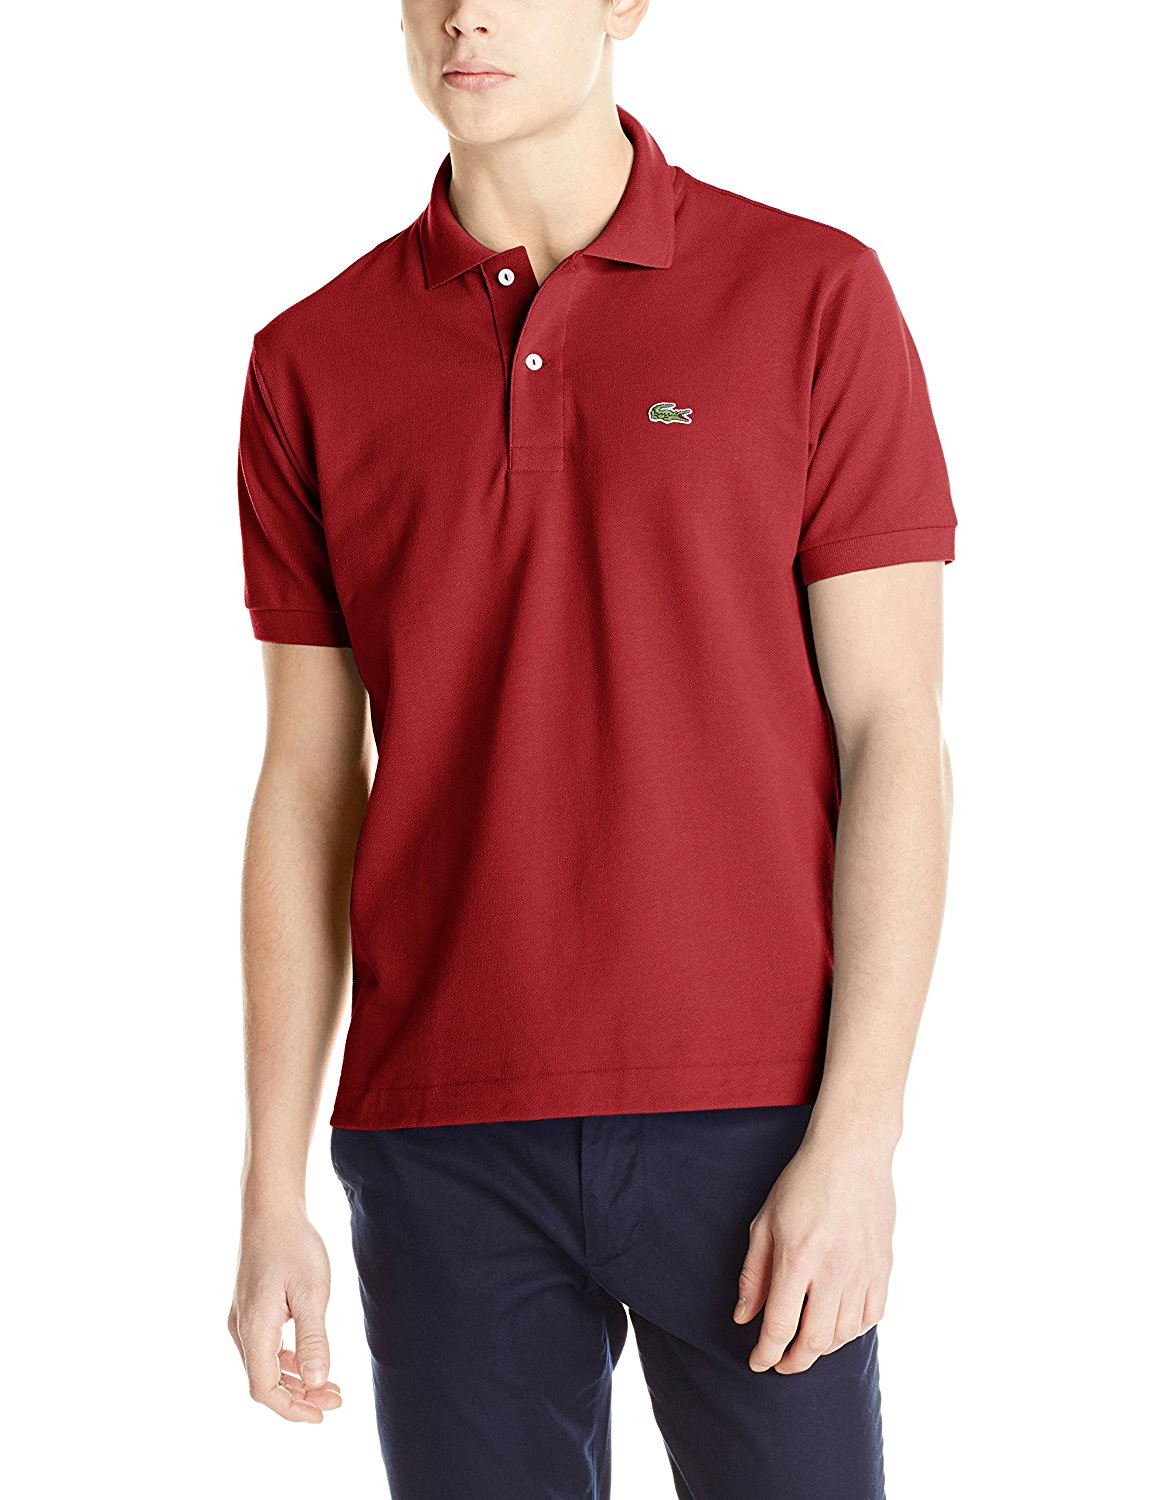 Polo Pique About Classic Sleeve Details Short Lacoste OX8nwP0k